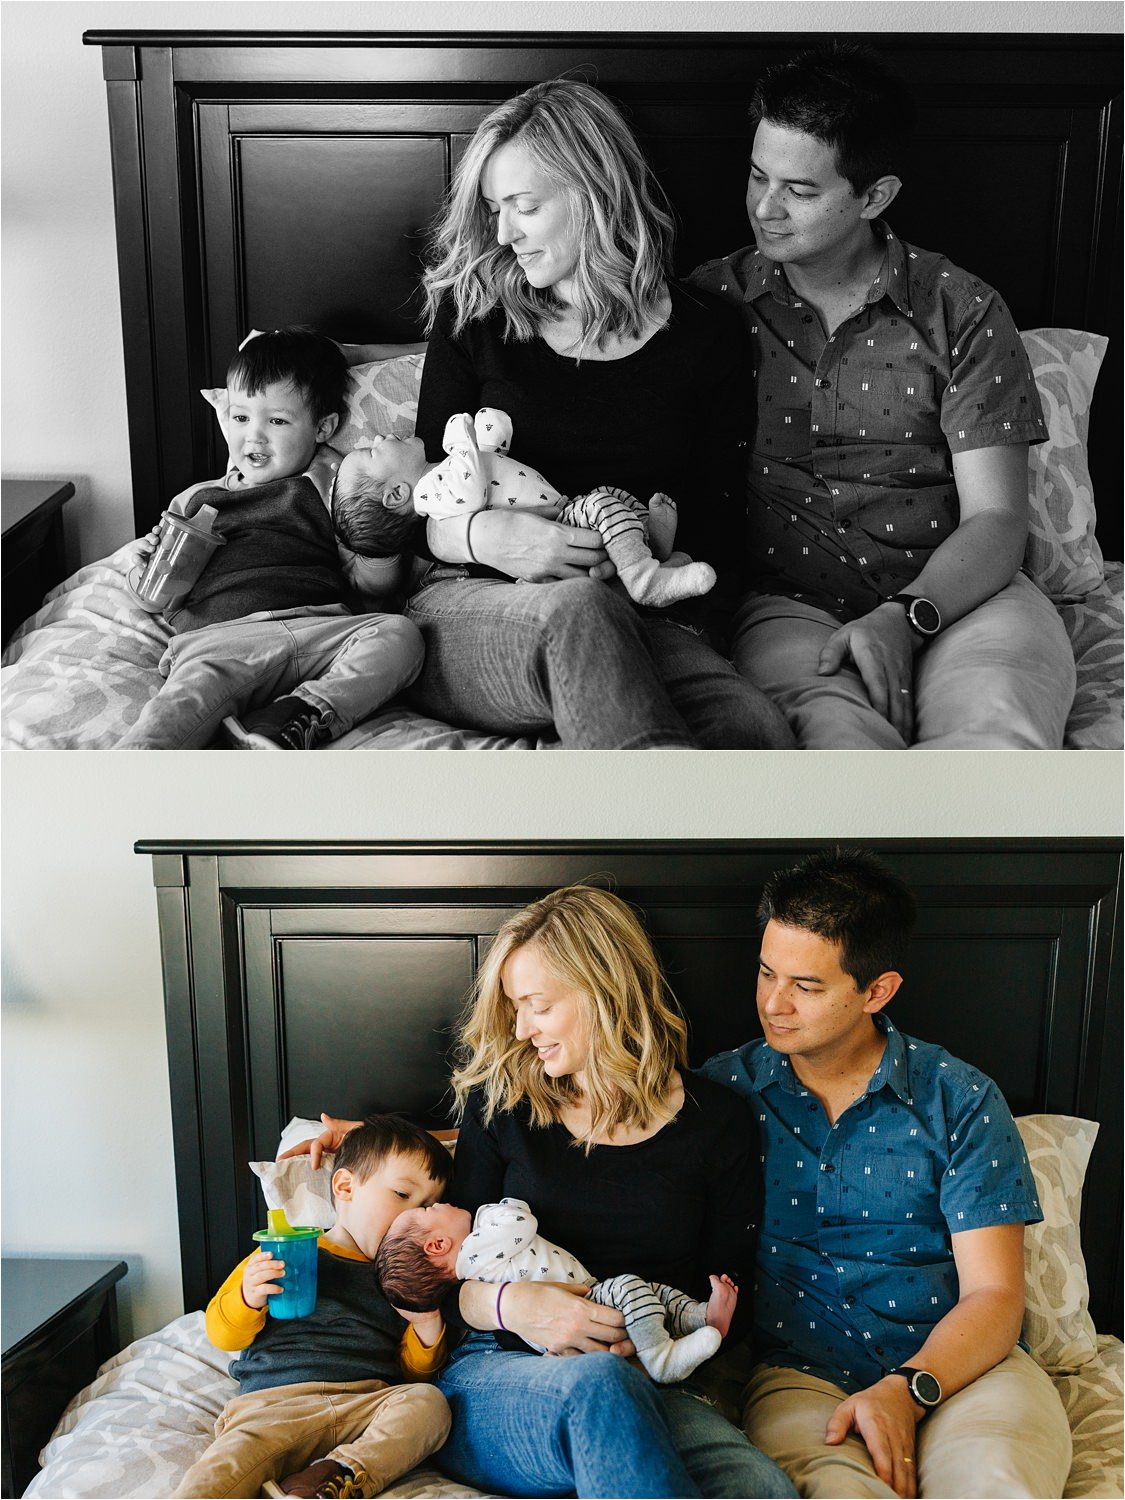 Lifestyle Newborn Photographer in Hermosa Beach - https://brittneyhannonphotography.com